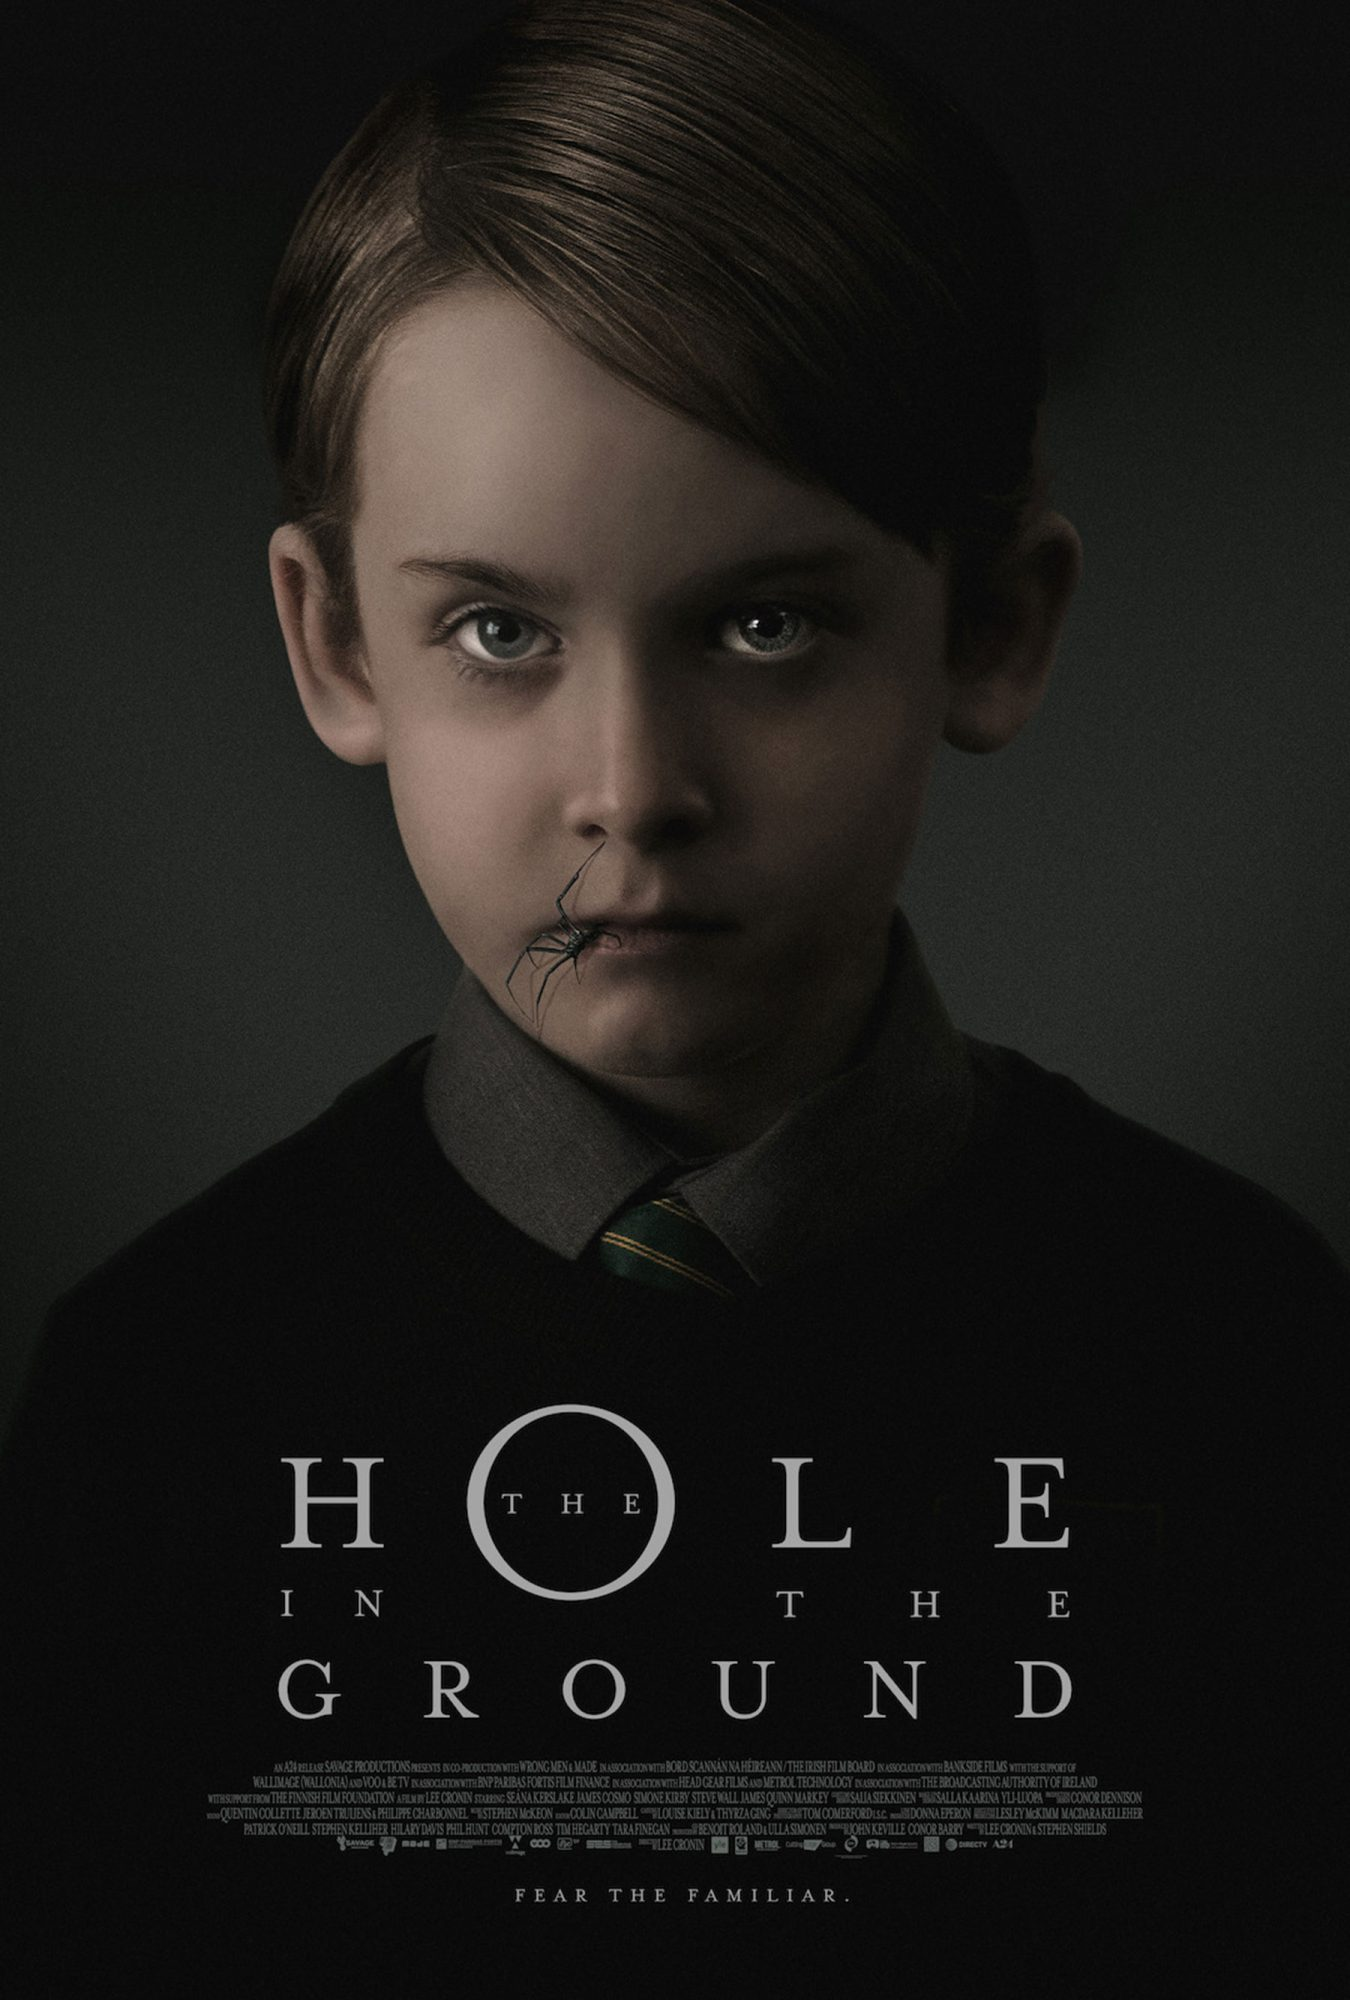 The Hole In The Ground movie posterCourtesy of Sundance Institute